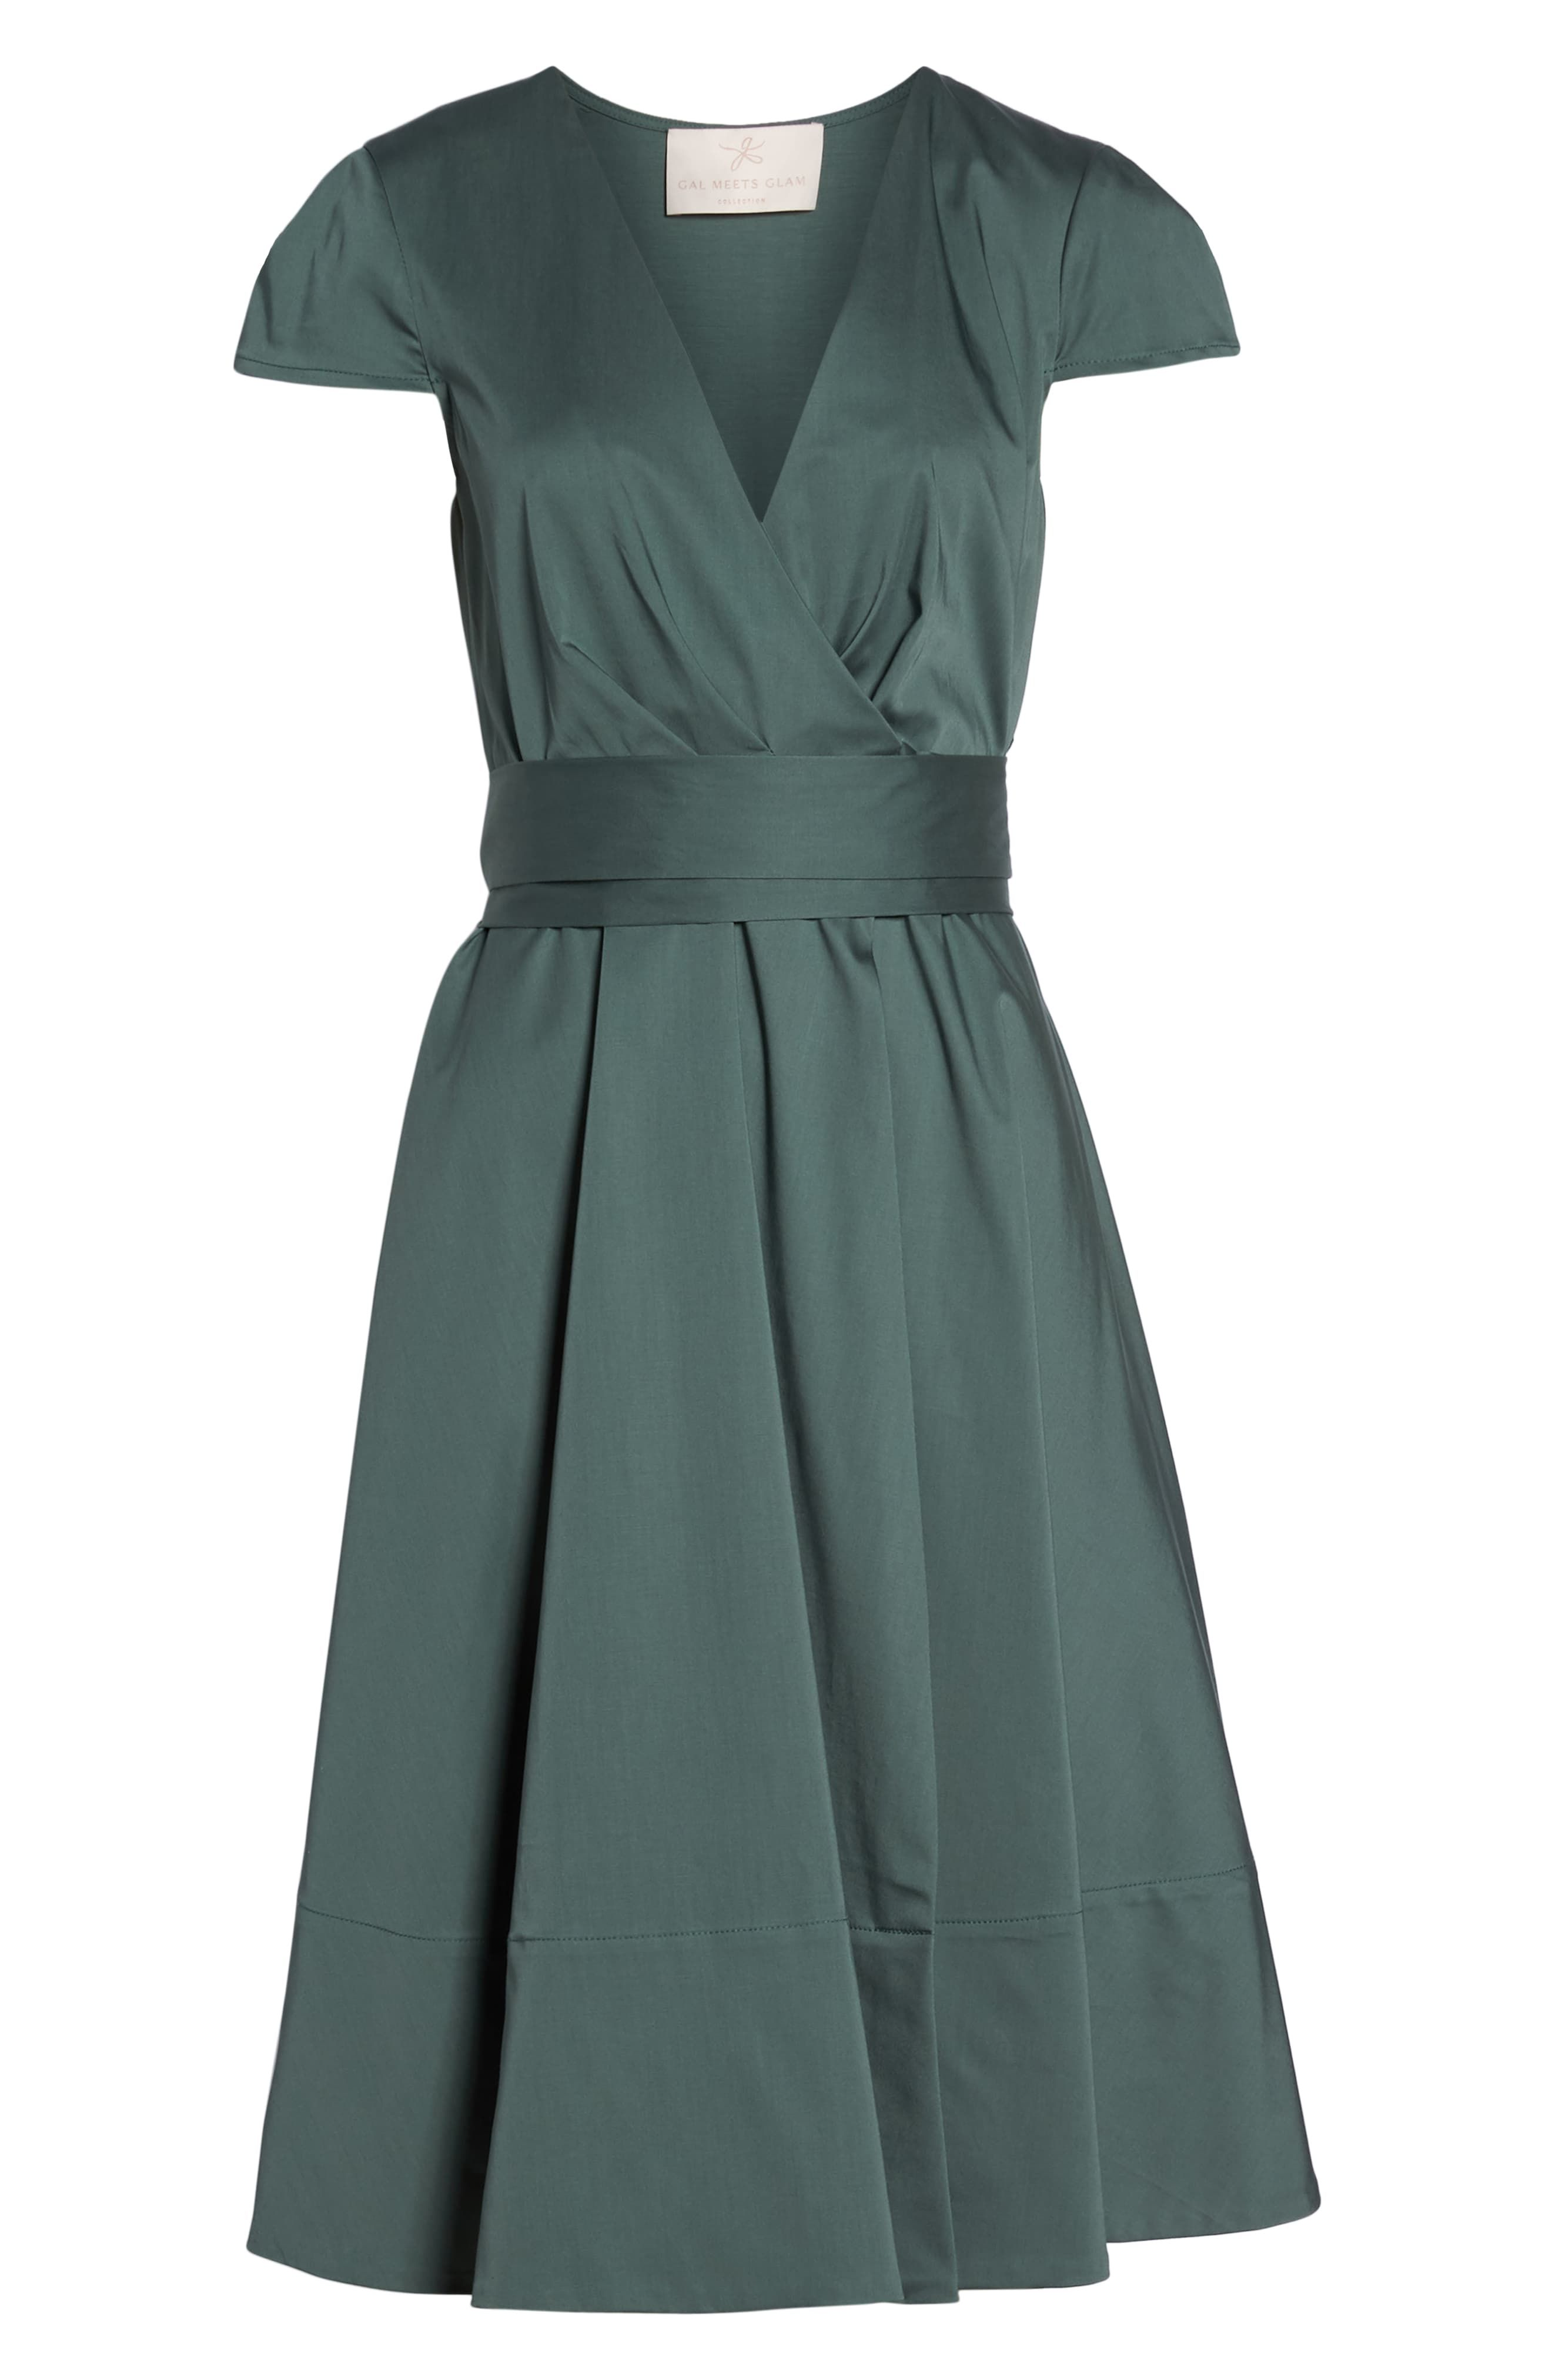 20 Stylish Fall Wedding Guest Dresses 2019 , What to Wear to